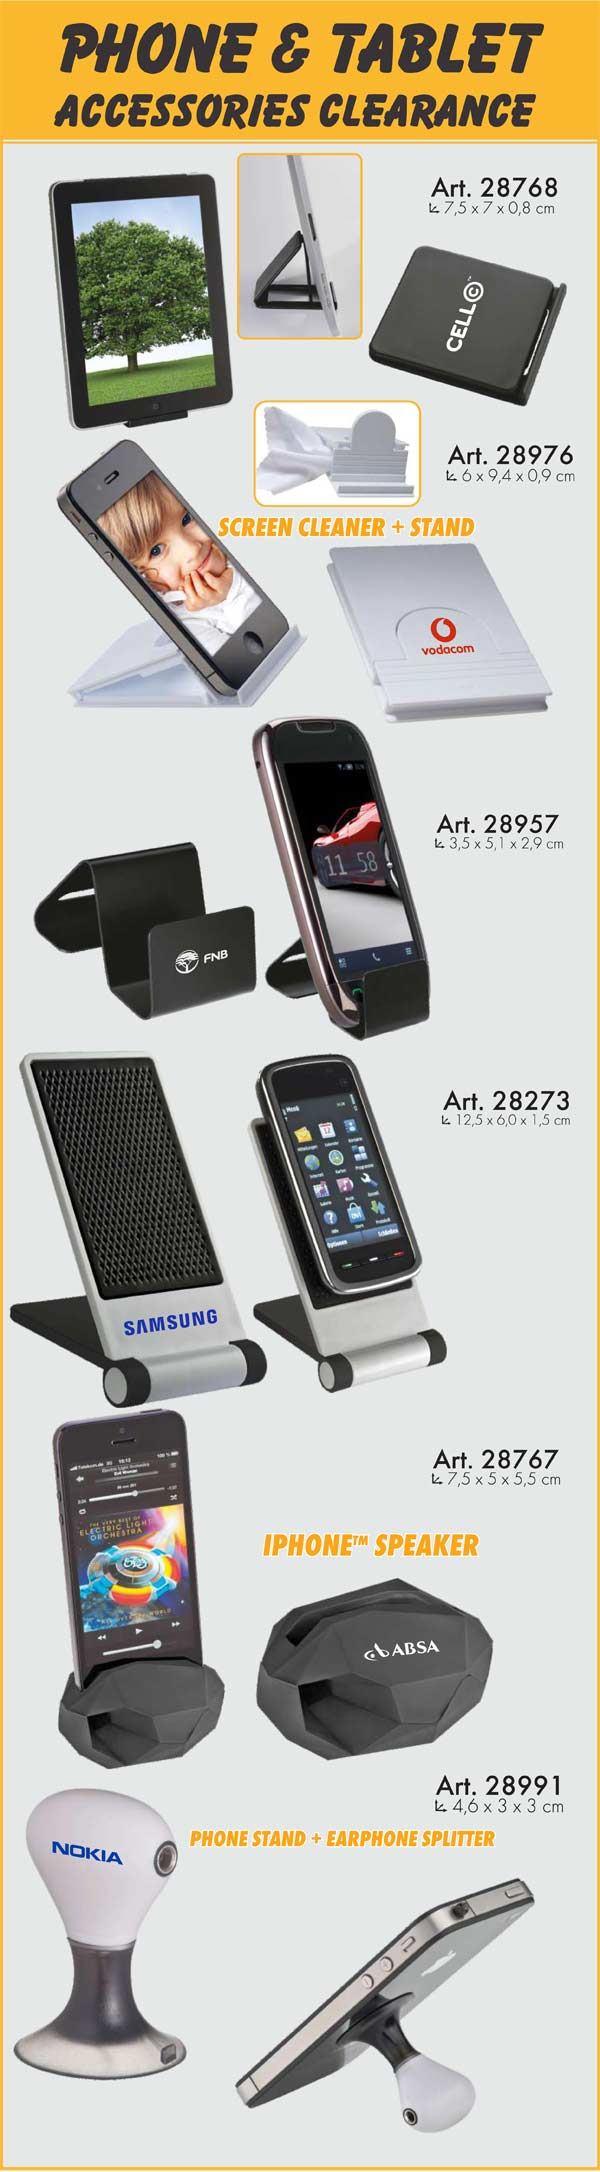 Phone and Tablet Accessories – Promotional Items